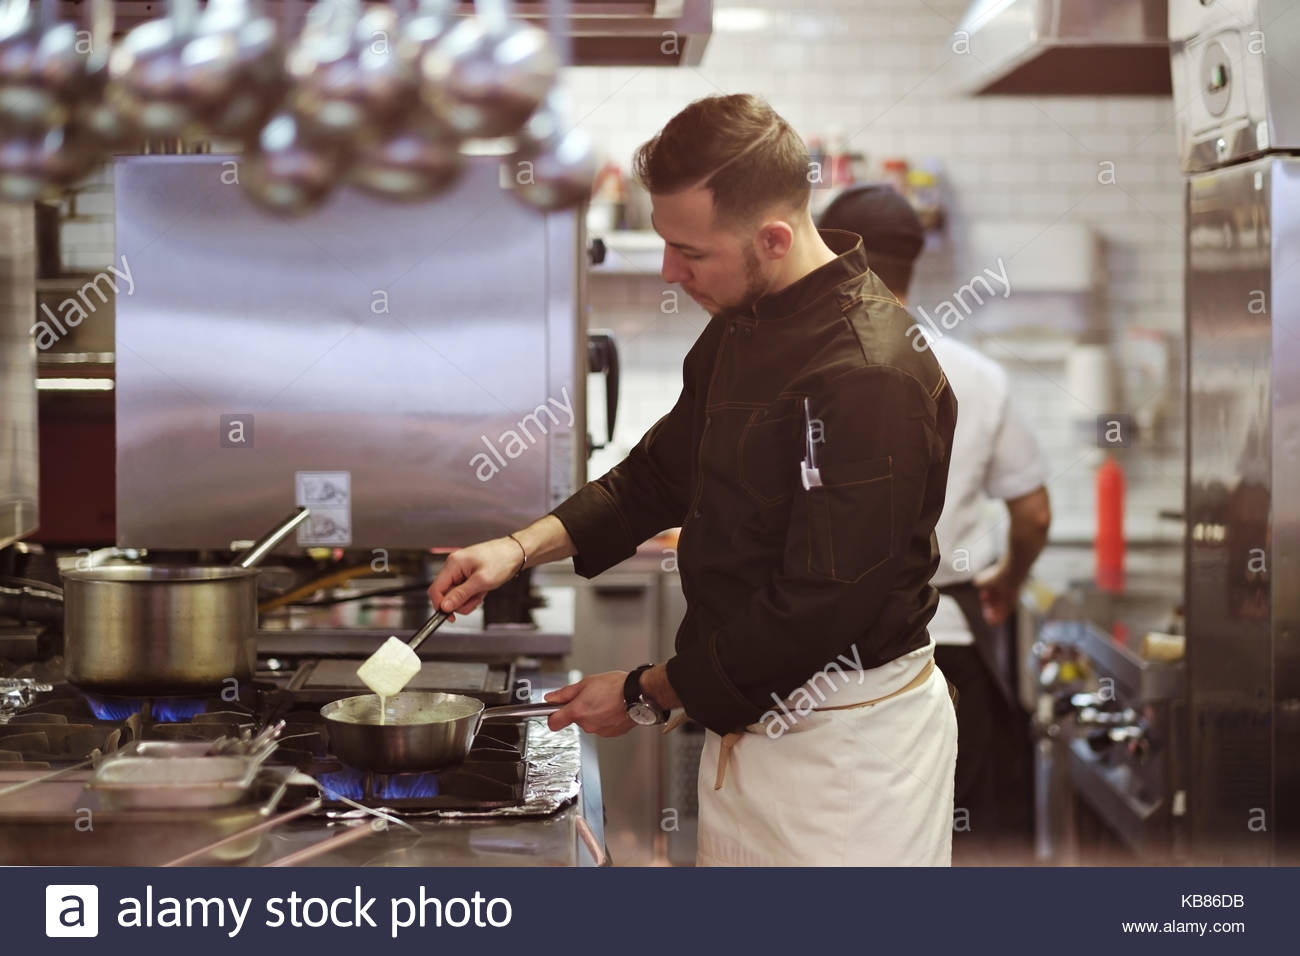 Food concept. A young cook stands in the kitchen and prepares a dish. - Stock Image